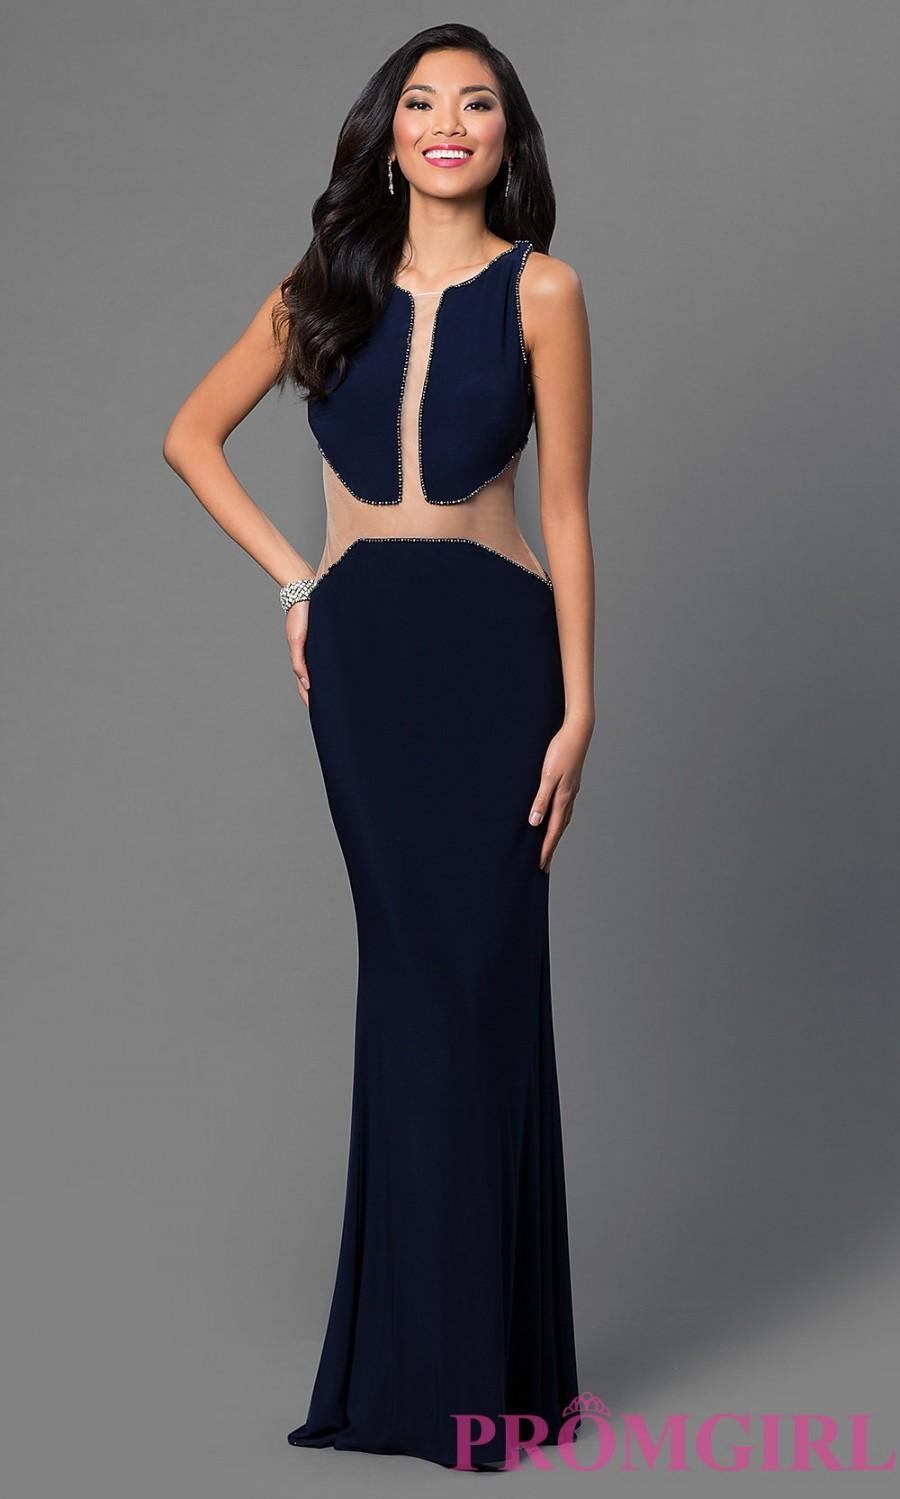 Hochzeit - Dave and Johnny Dress with Illusion Cut Outs - Discount Evening Dresses